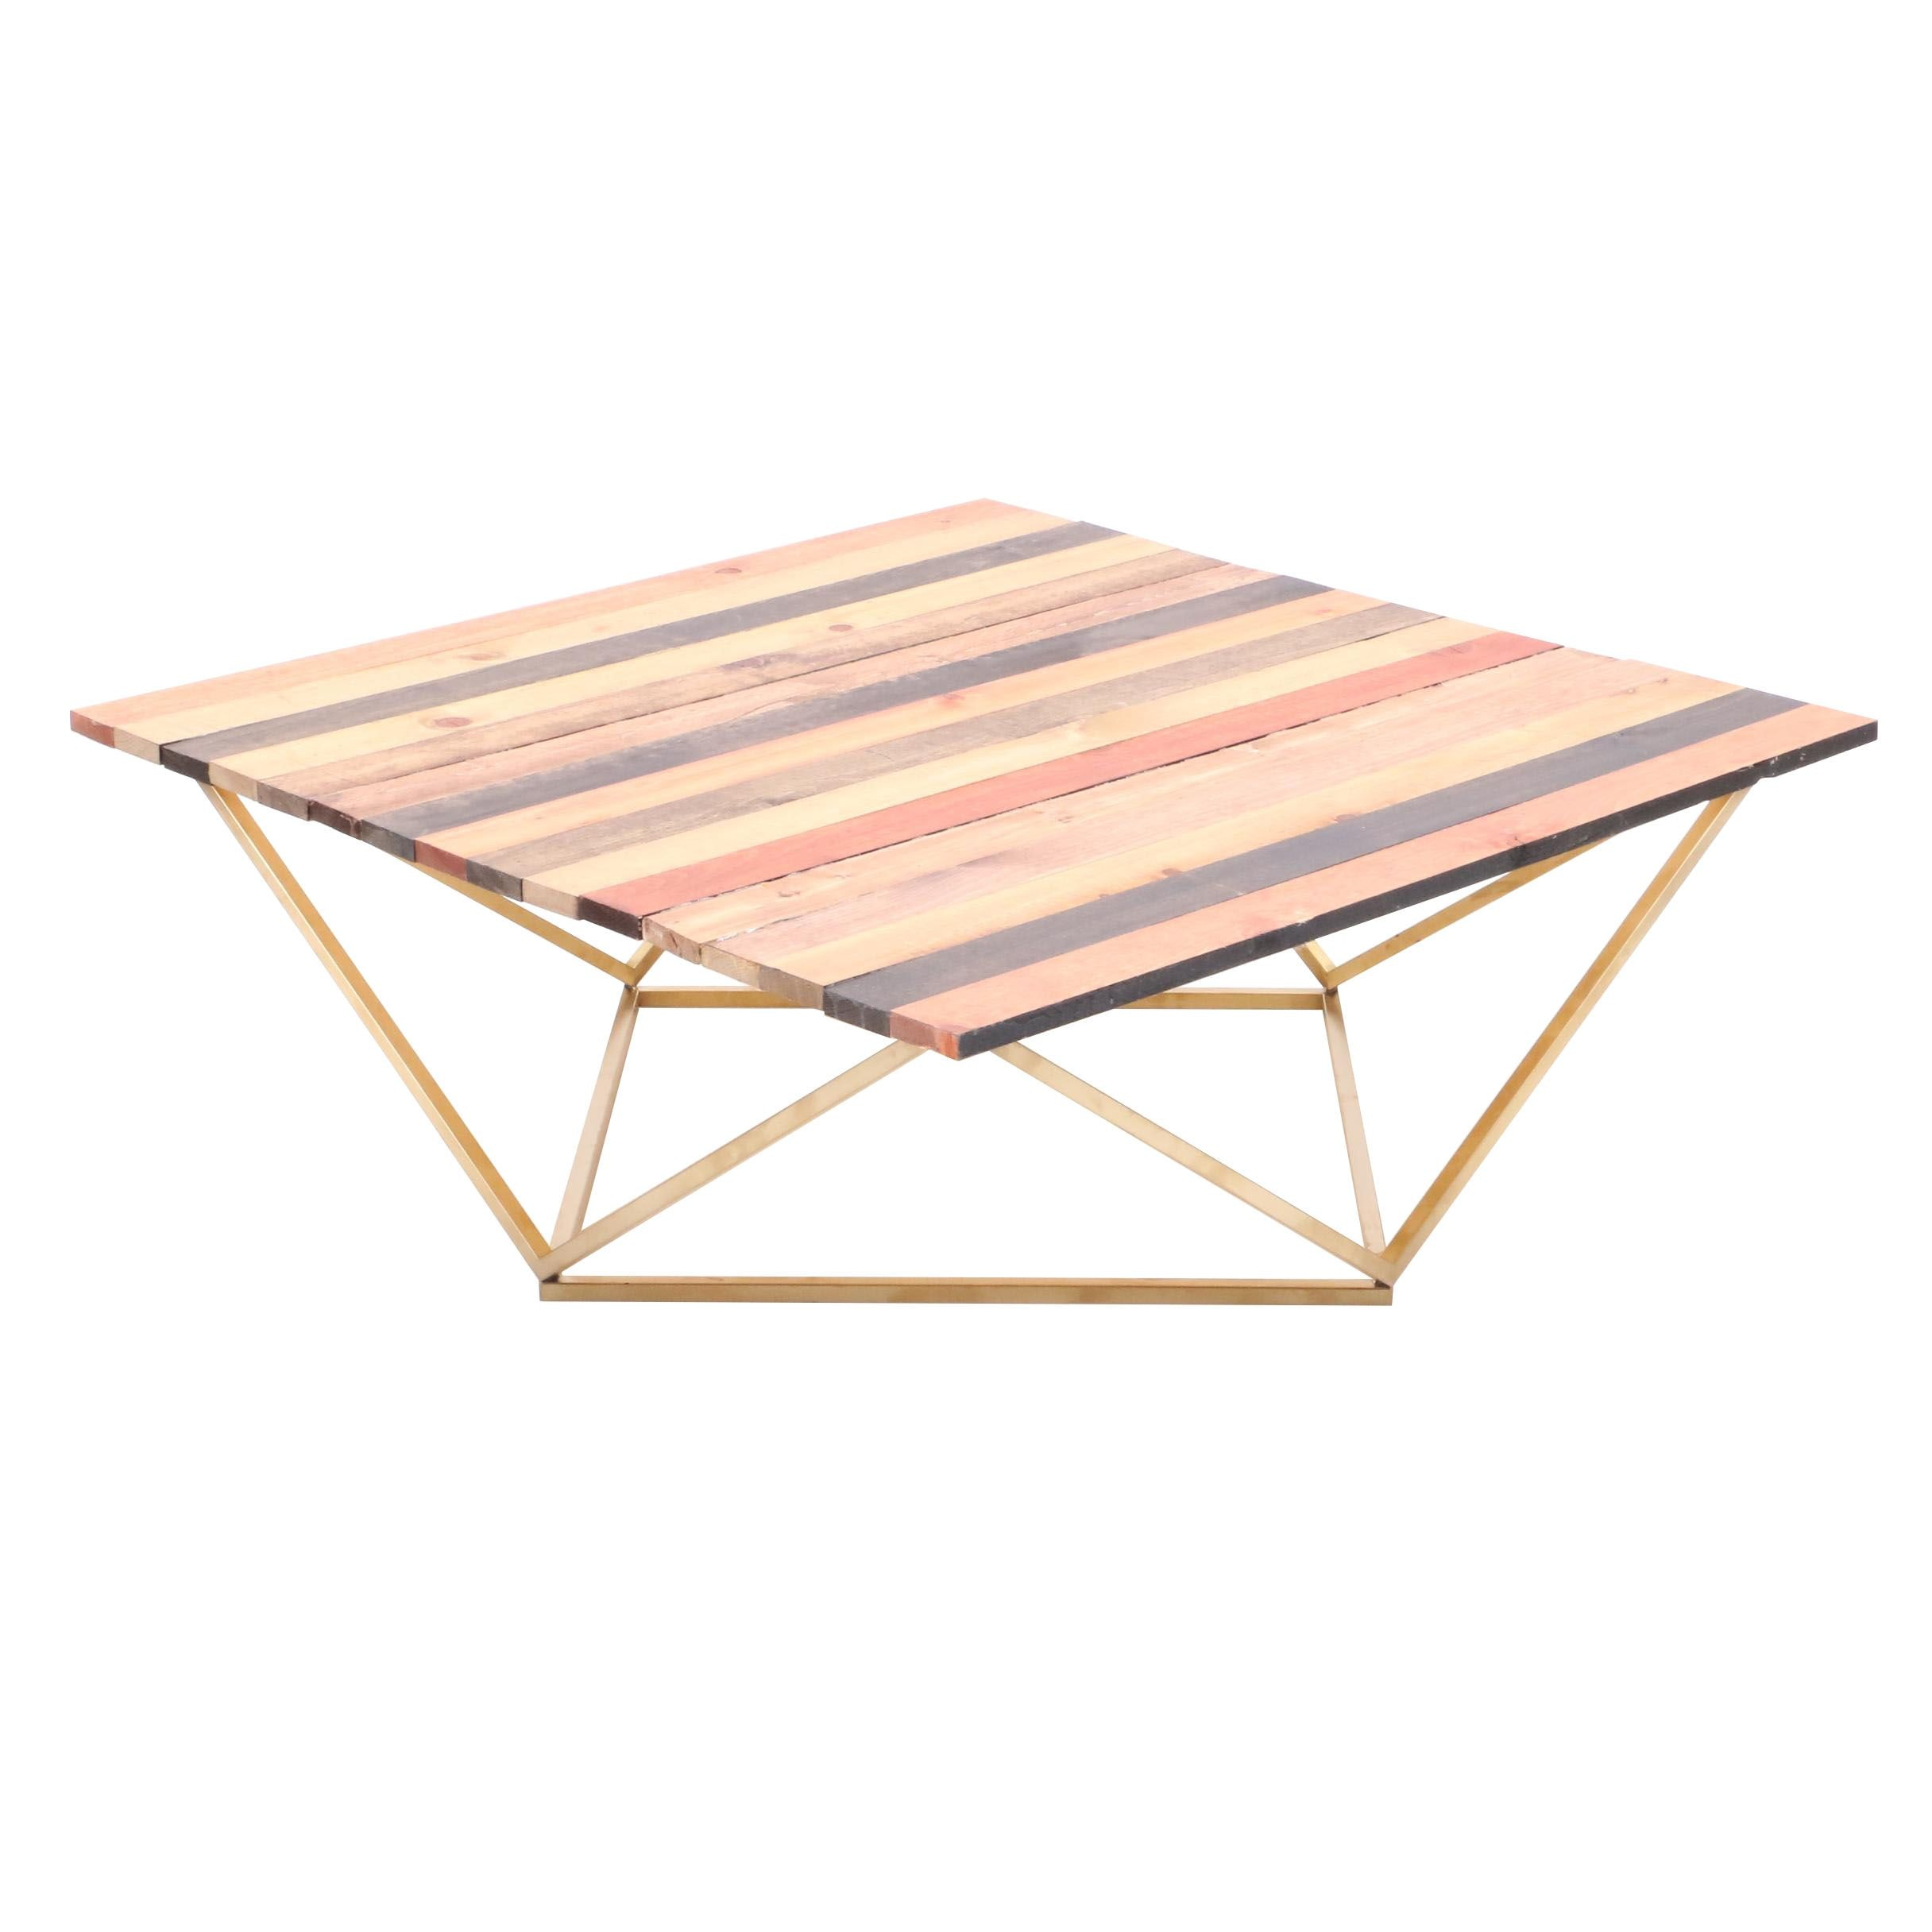 Handmade Contemporary Coffee Table by Duane Froelicher